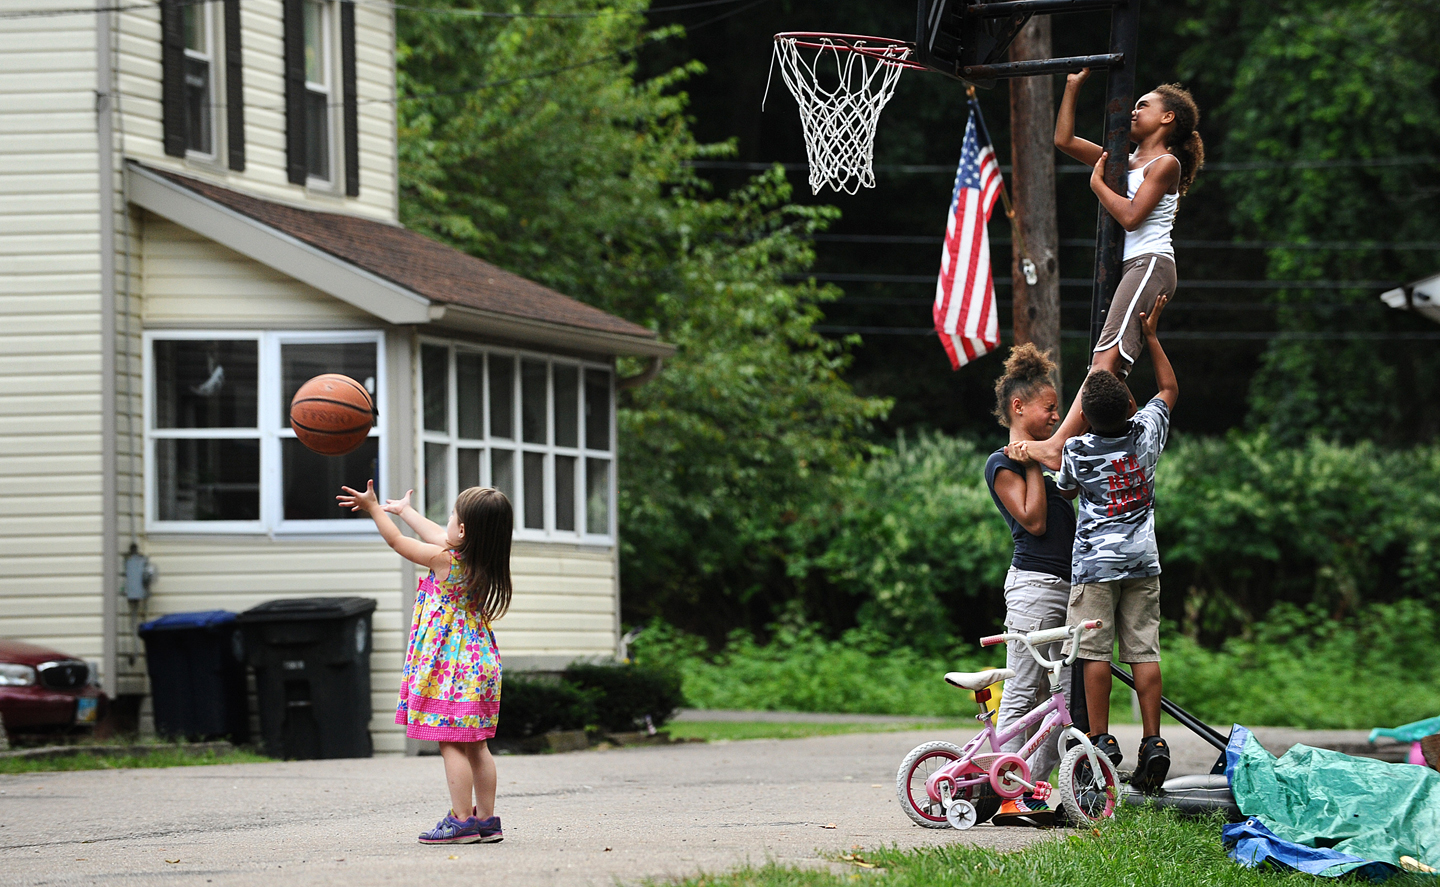 AKRON, OHIO AUGUST 27, 2014-Children team-up to adjust the the basketball rim as the former childhood home of LeBron James sits in the background on Overlook Place in Akron, Ohio. (Photo by Wally Skalij/Los Angeles Times via Getty Images)